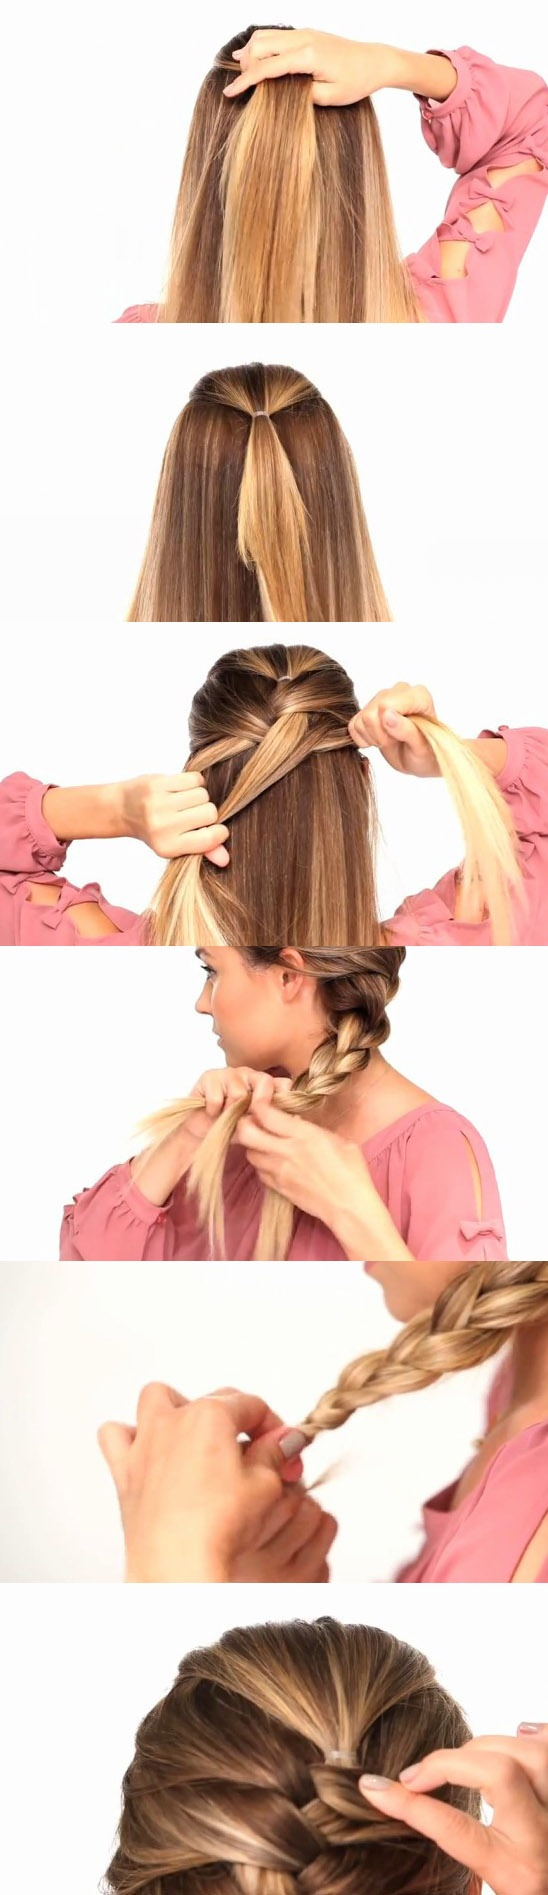 French braiding tips - Easy Way To French Braid Your Own Hair